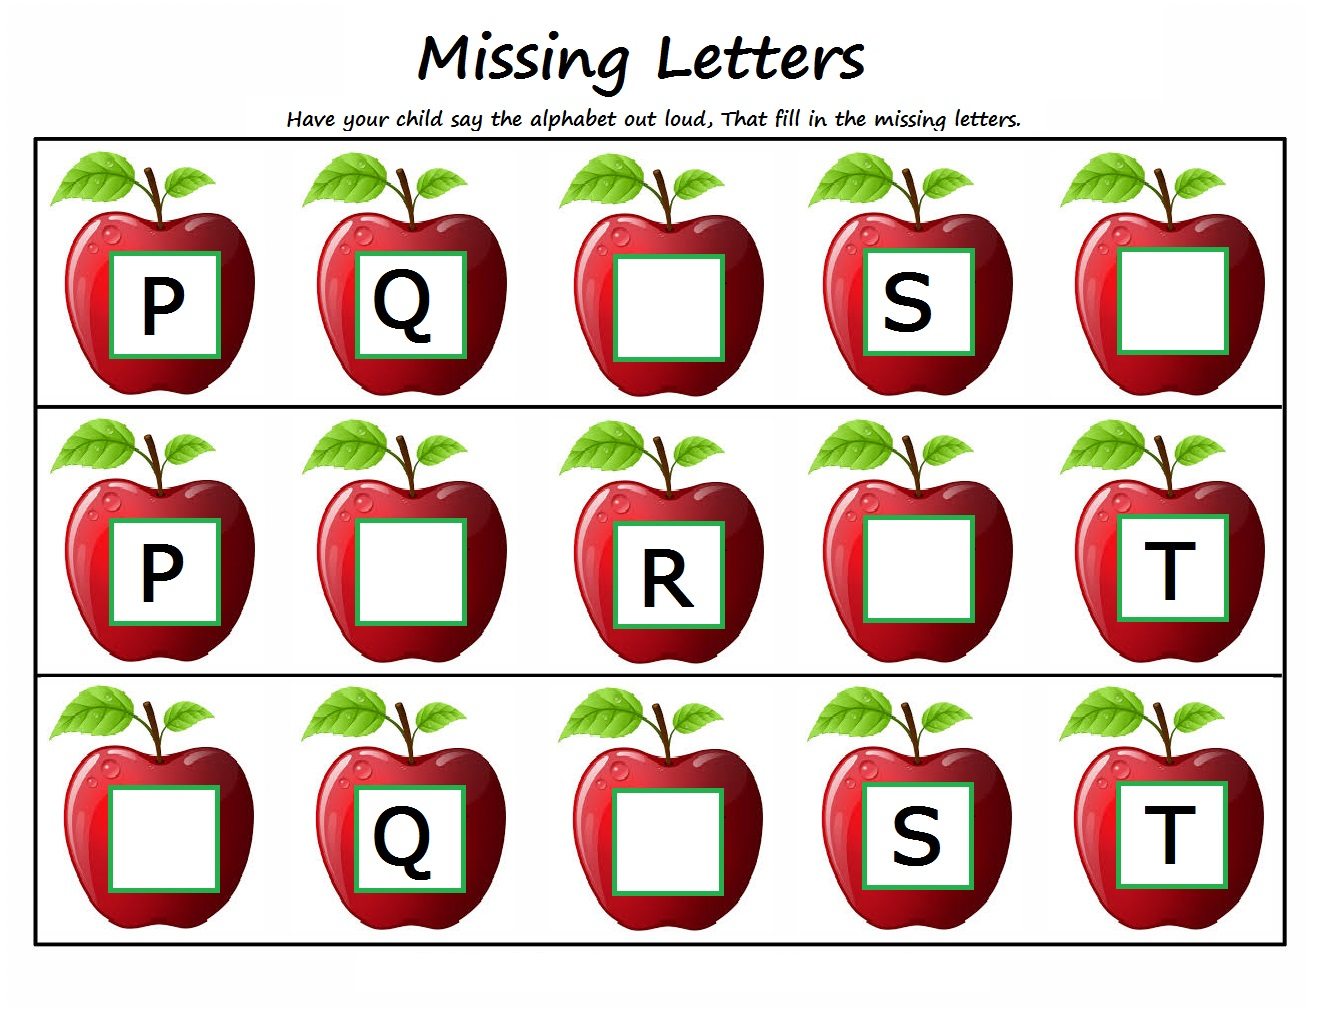 Kindergarten Worksheets: Kindergarten Worksheets - Missing Letters